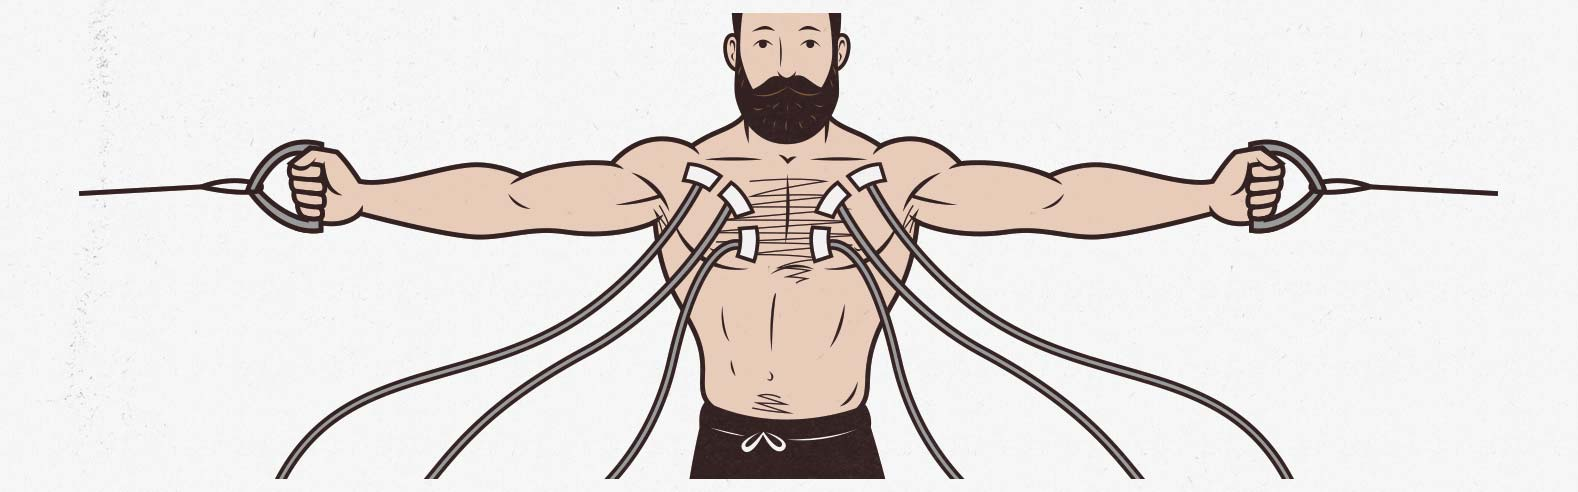 EMG for chest exercises